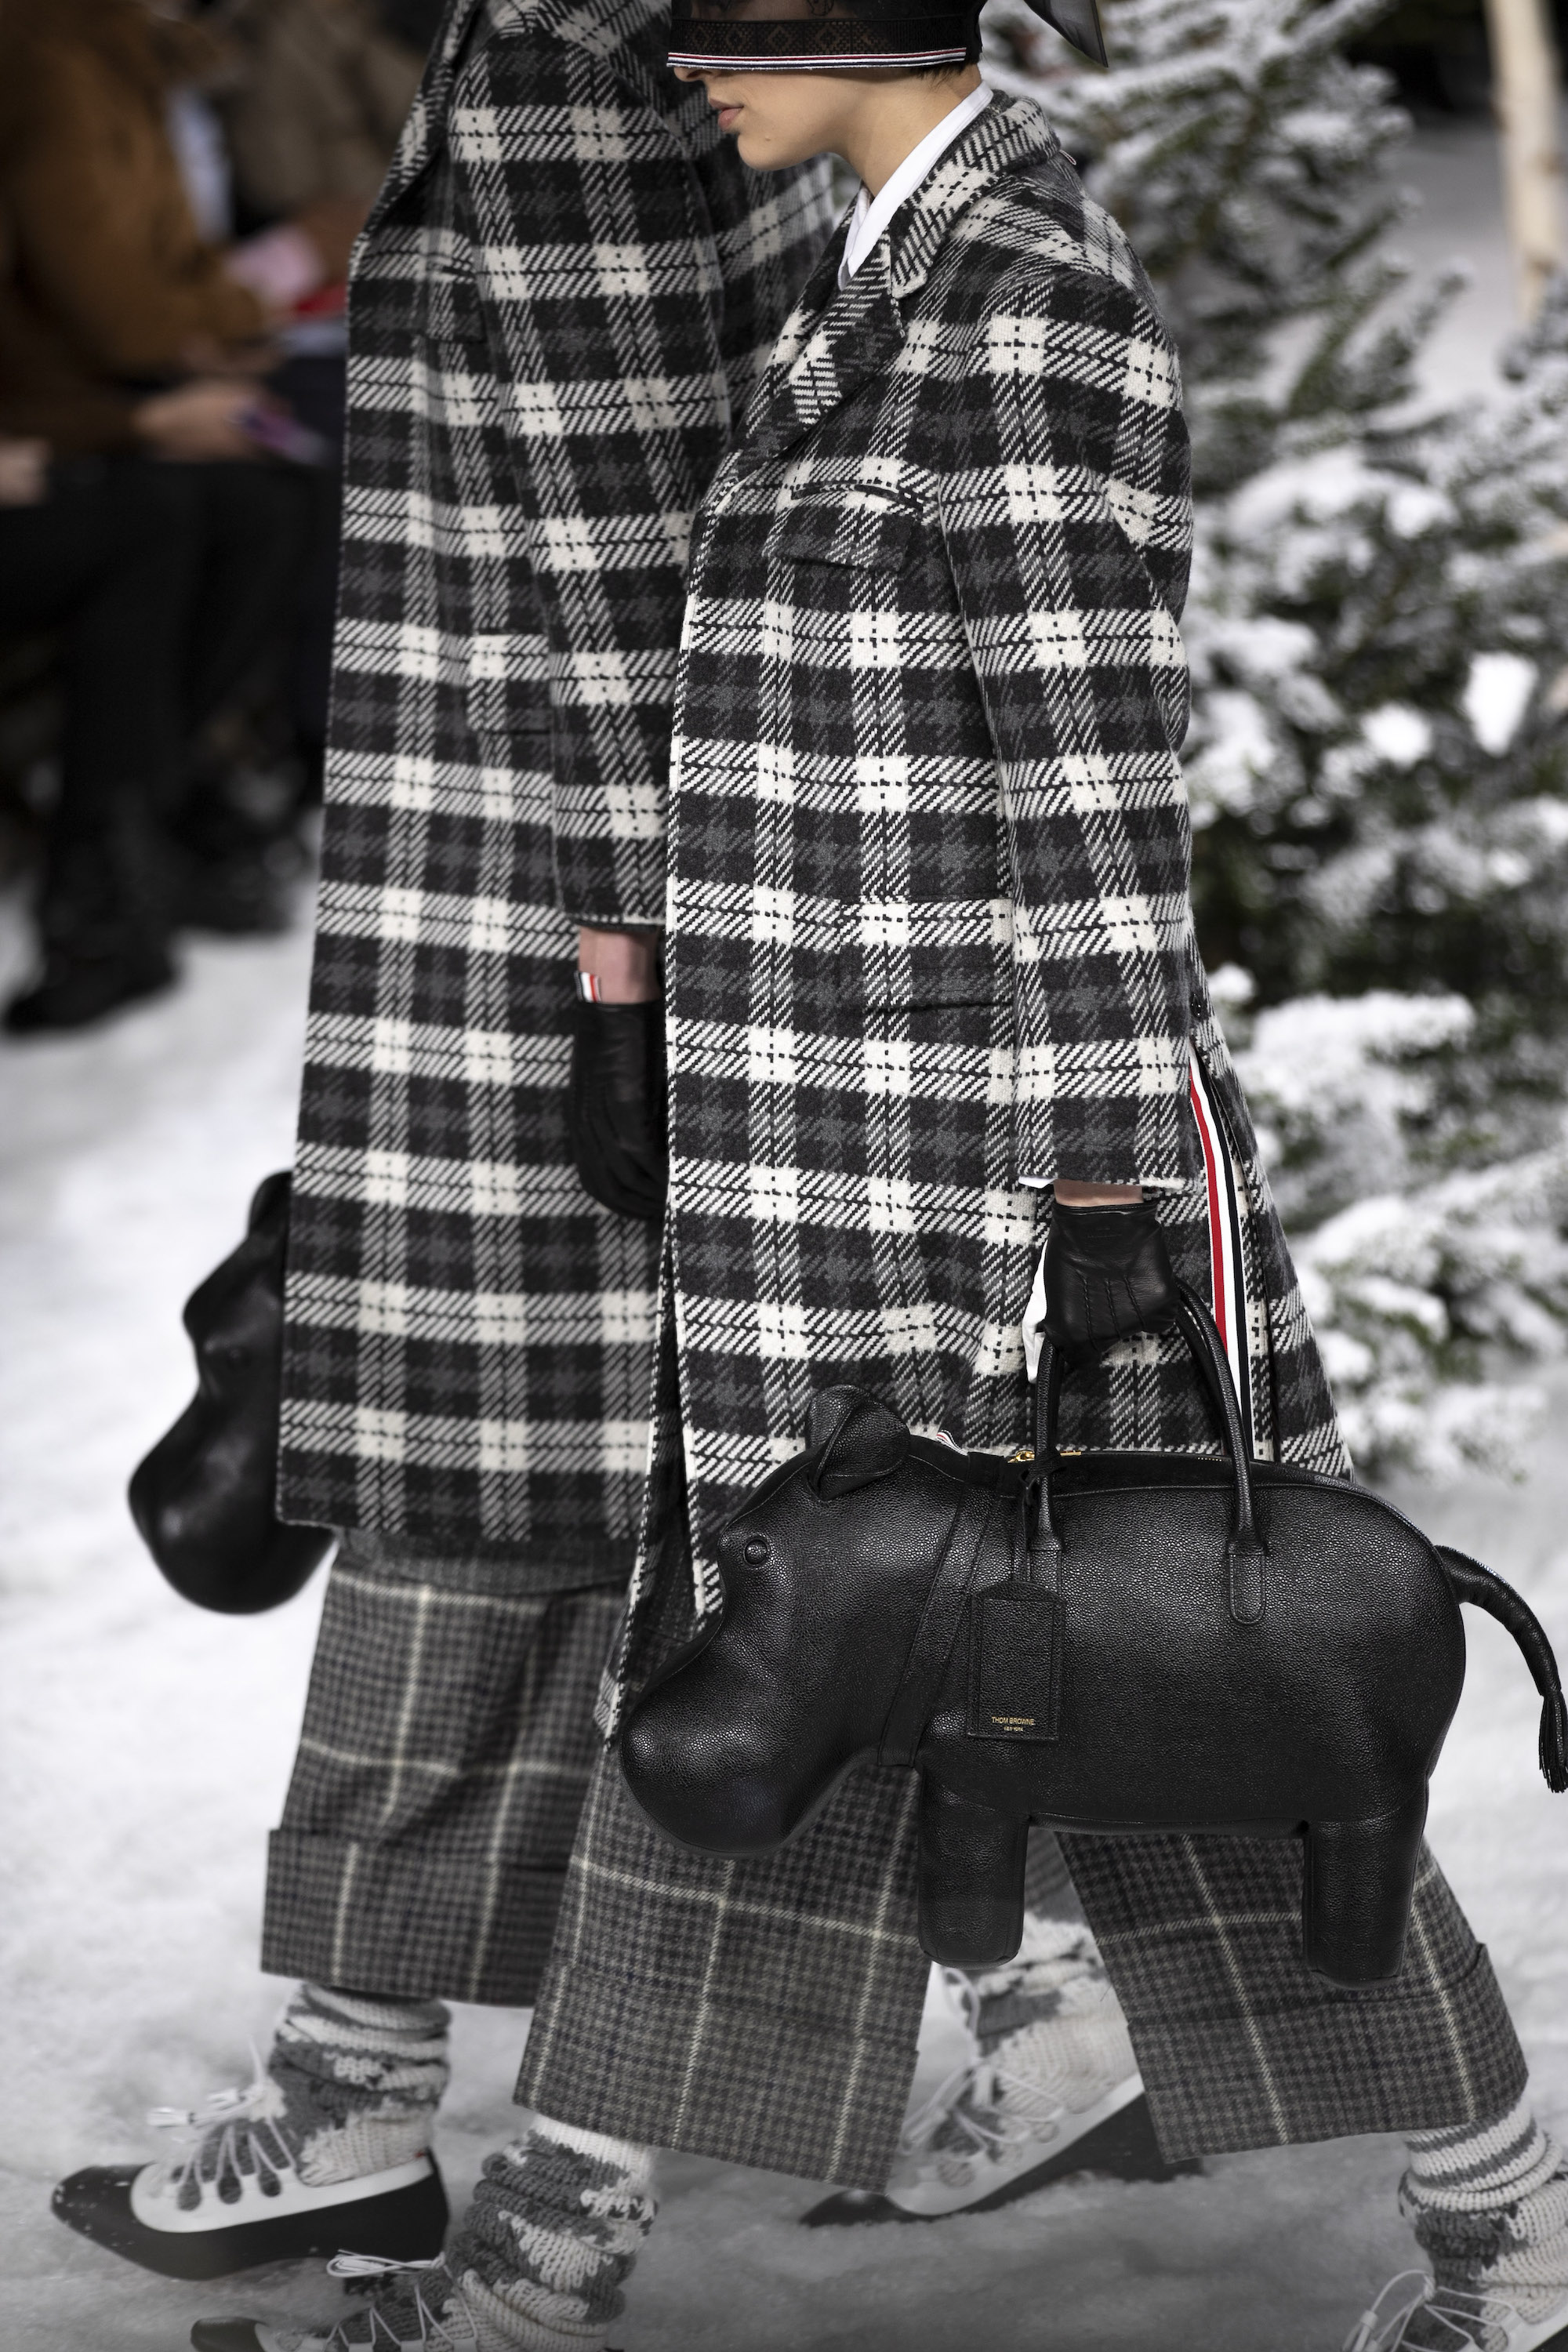 Thom Browne AW20 PFW Collection checkered coat